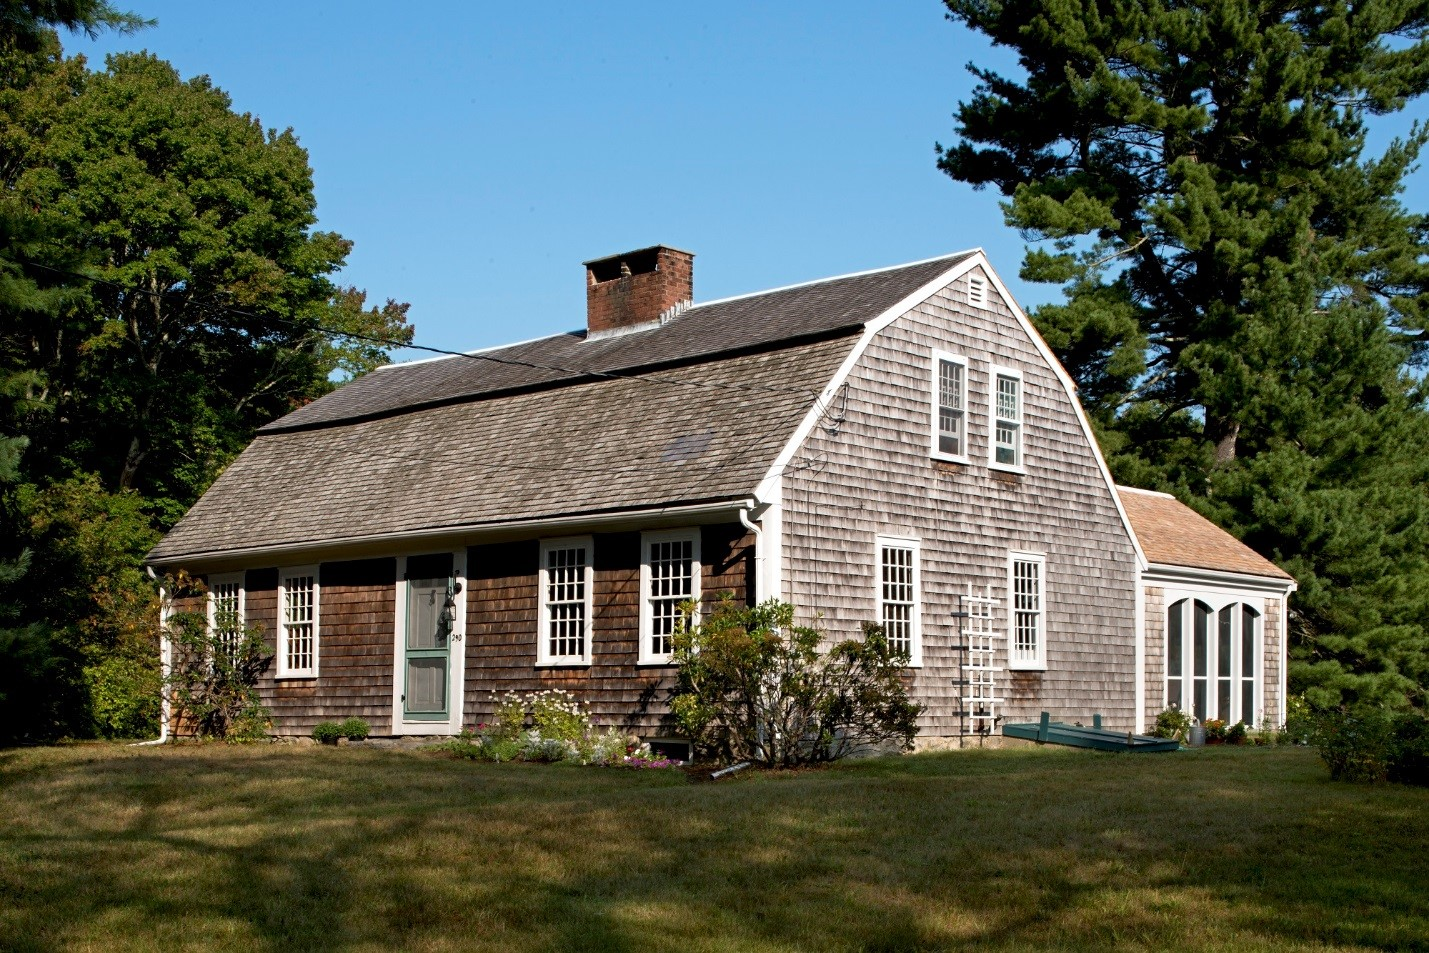 Recompense magoun house for sale in pembroke mass for Old homes for sale in england